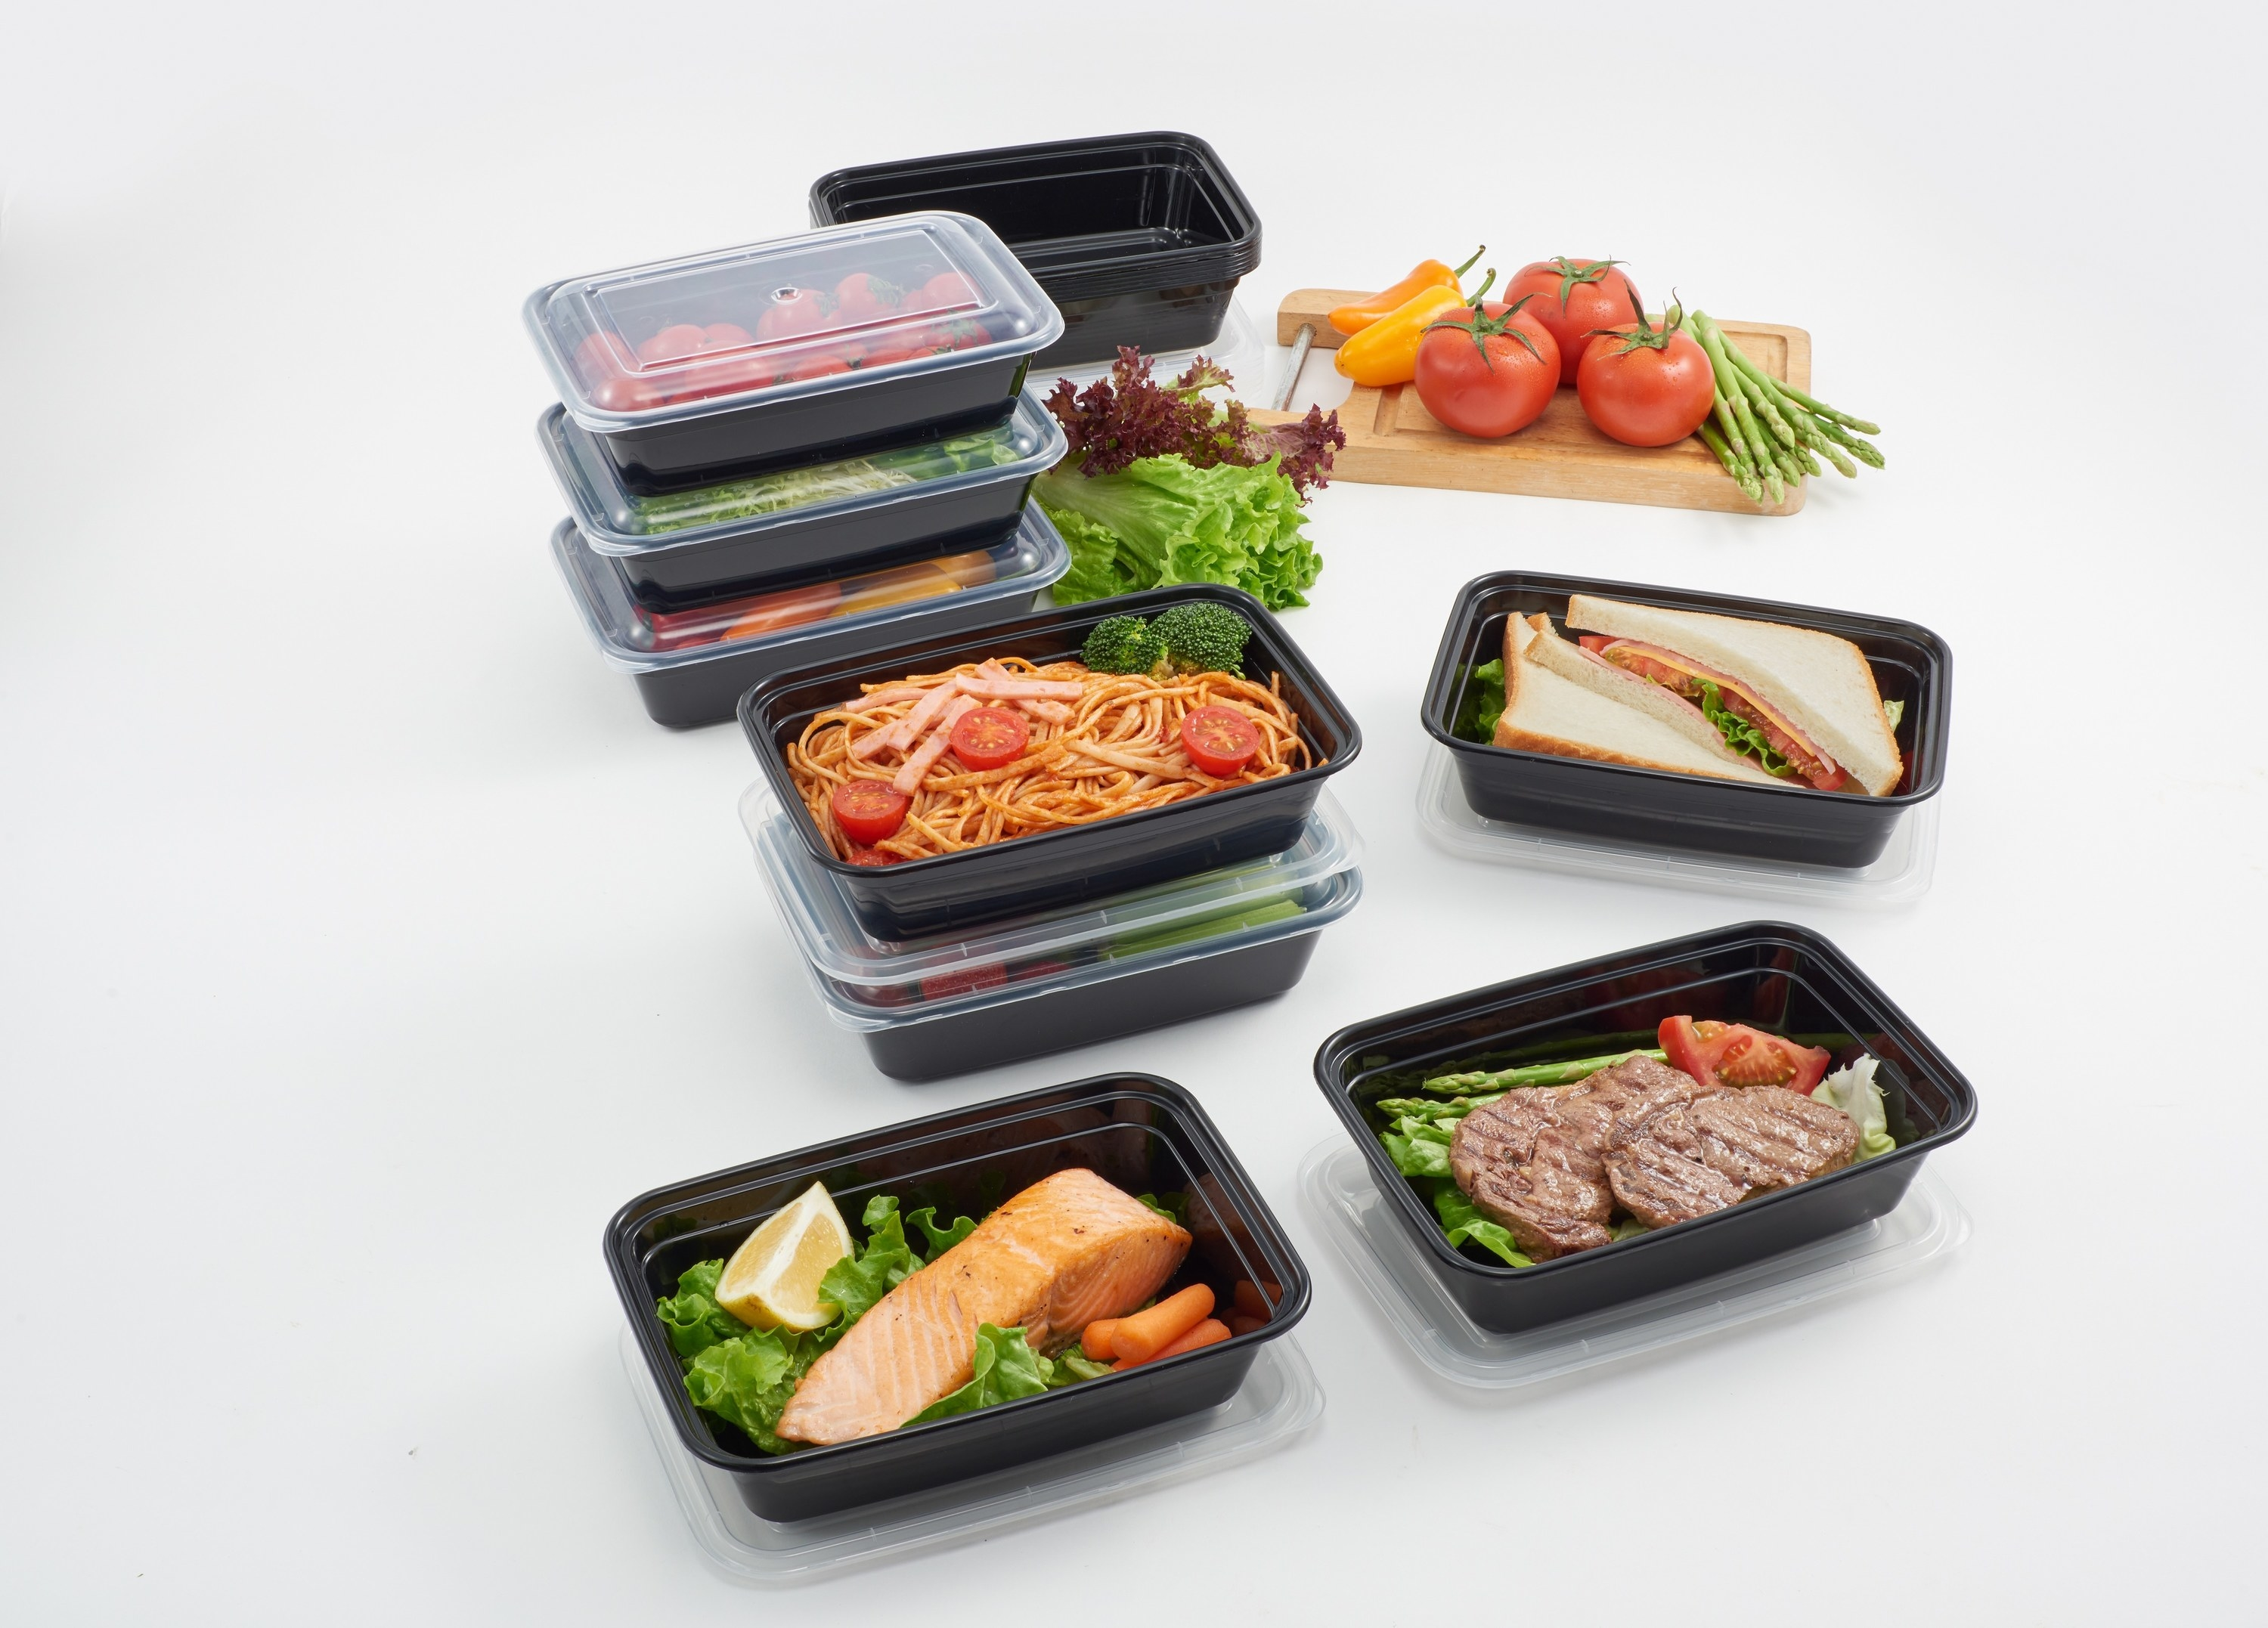 Black storage containers with clear lids